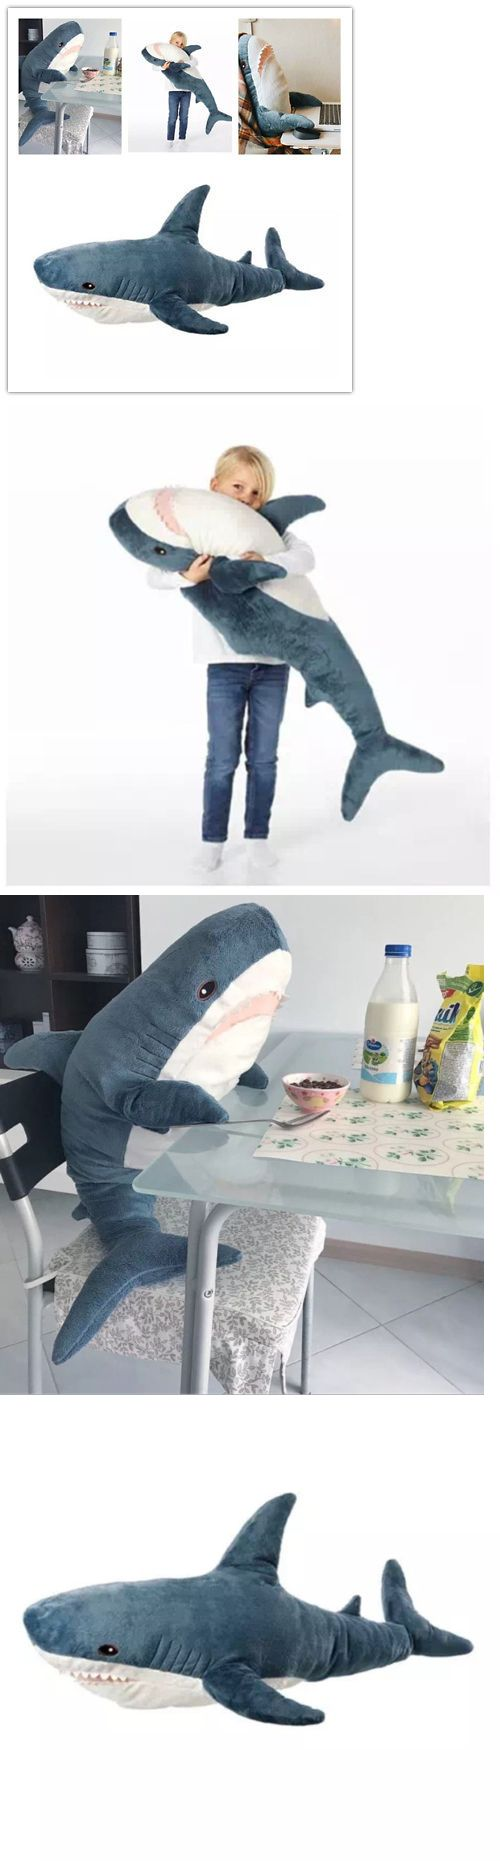 Bean Bags And Inflatables 48319 Giant Shark Pillow Soft Stuffed